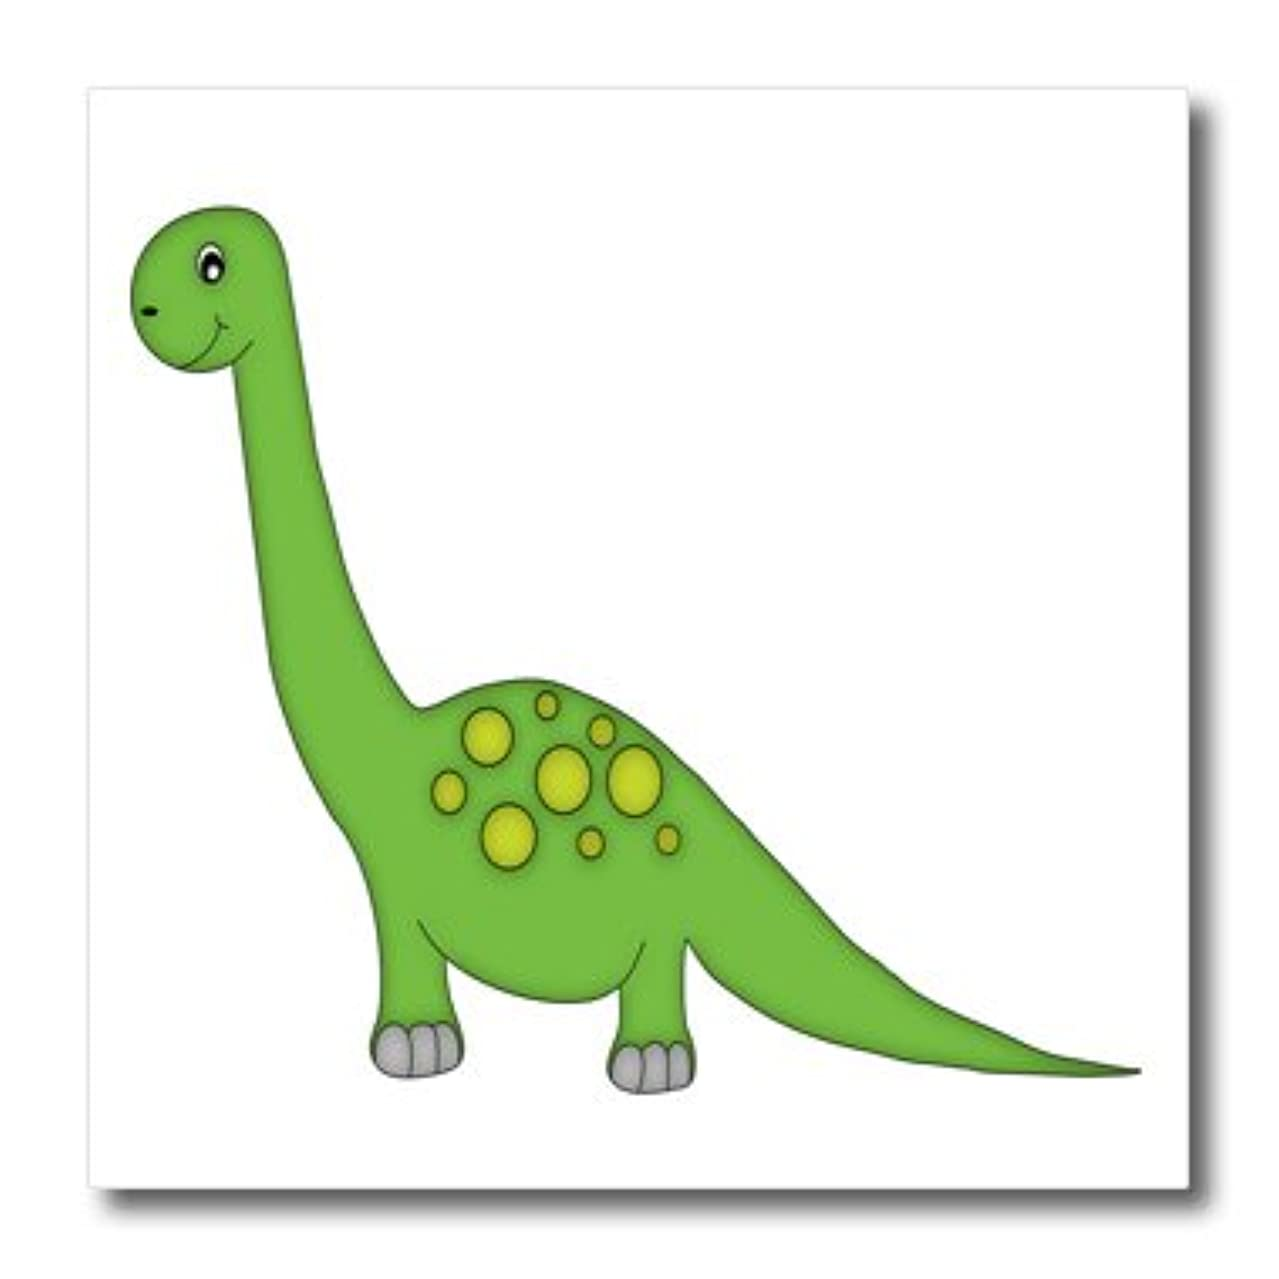 3dRose Cute Green and Yellow Standing Dinosaur-Iron on Heat Transfer, 10 by 10